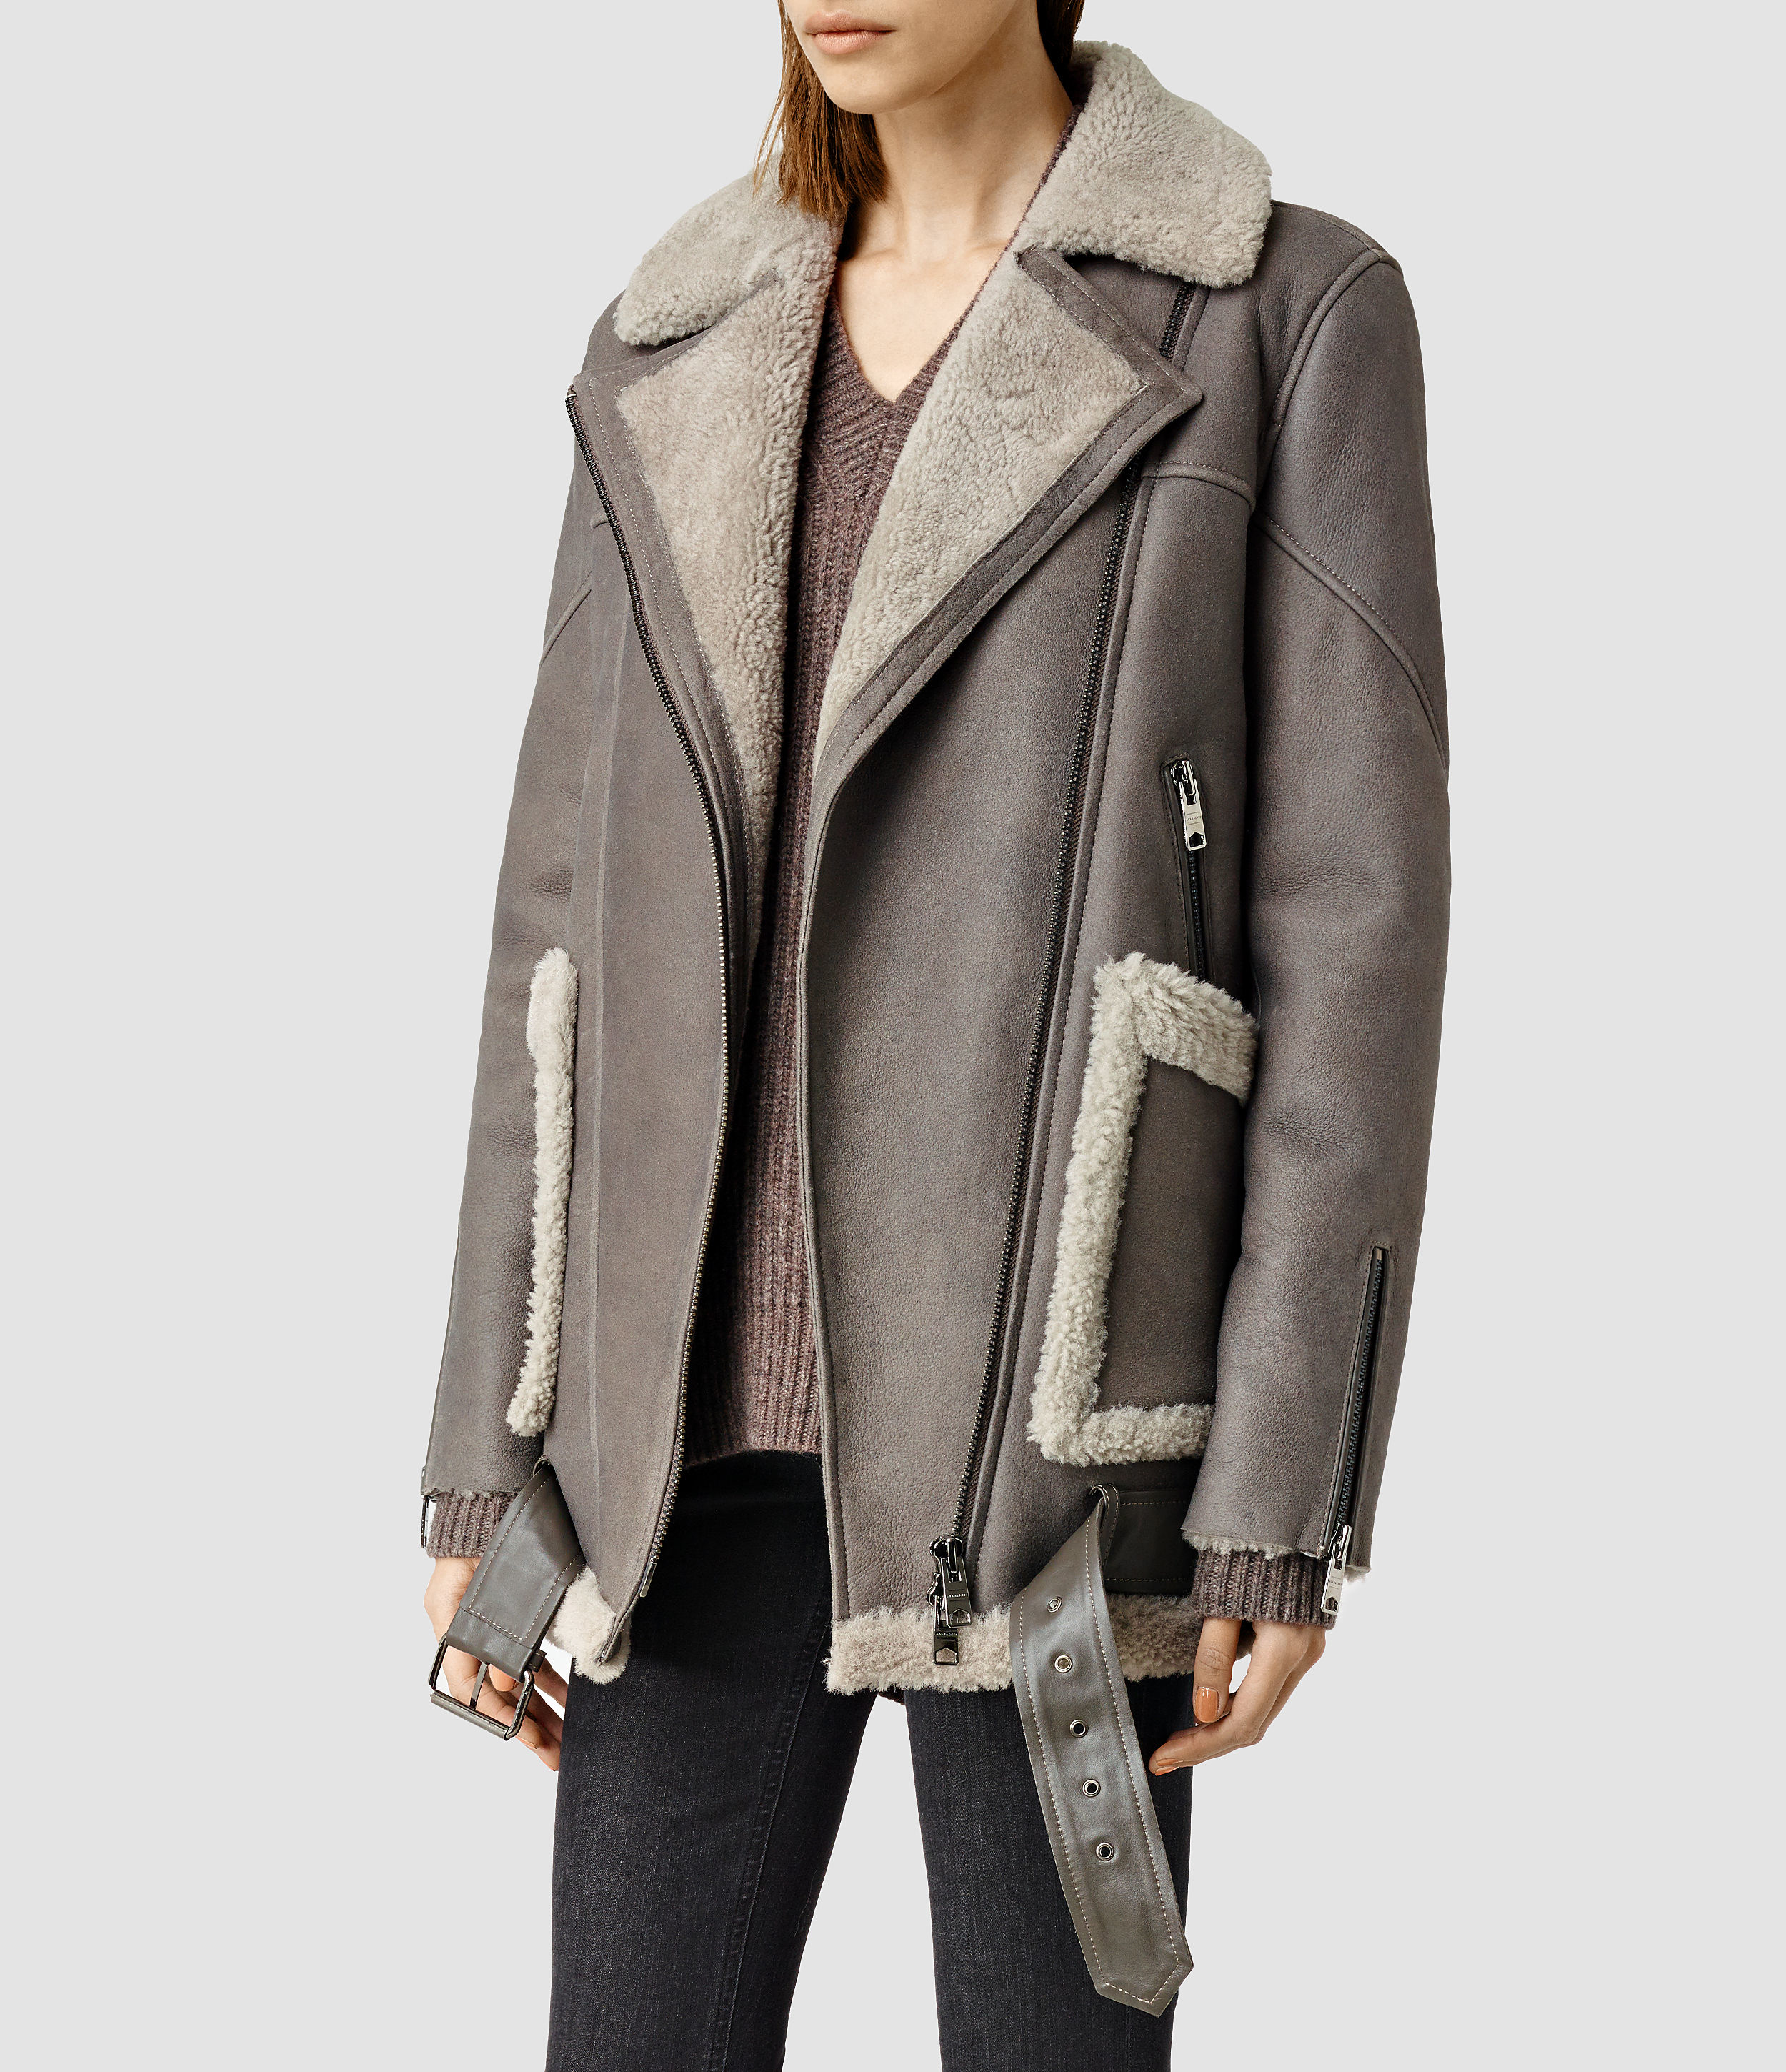 Allsaints Beck Shearling Jacket in Gray | Lyst